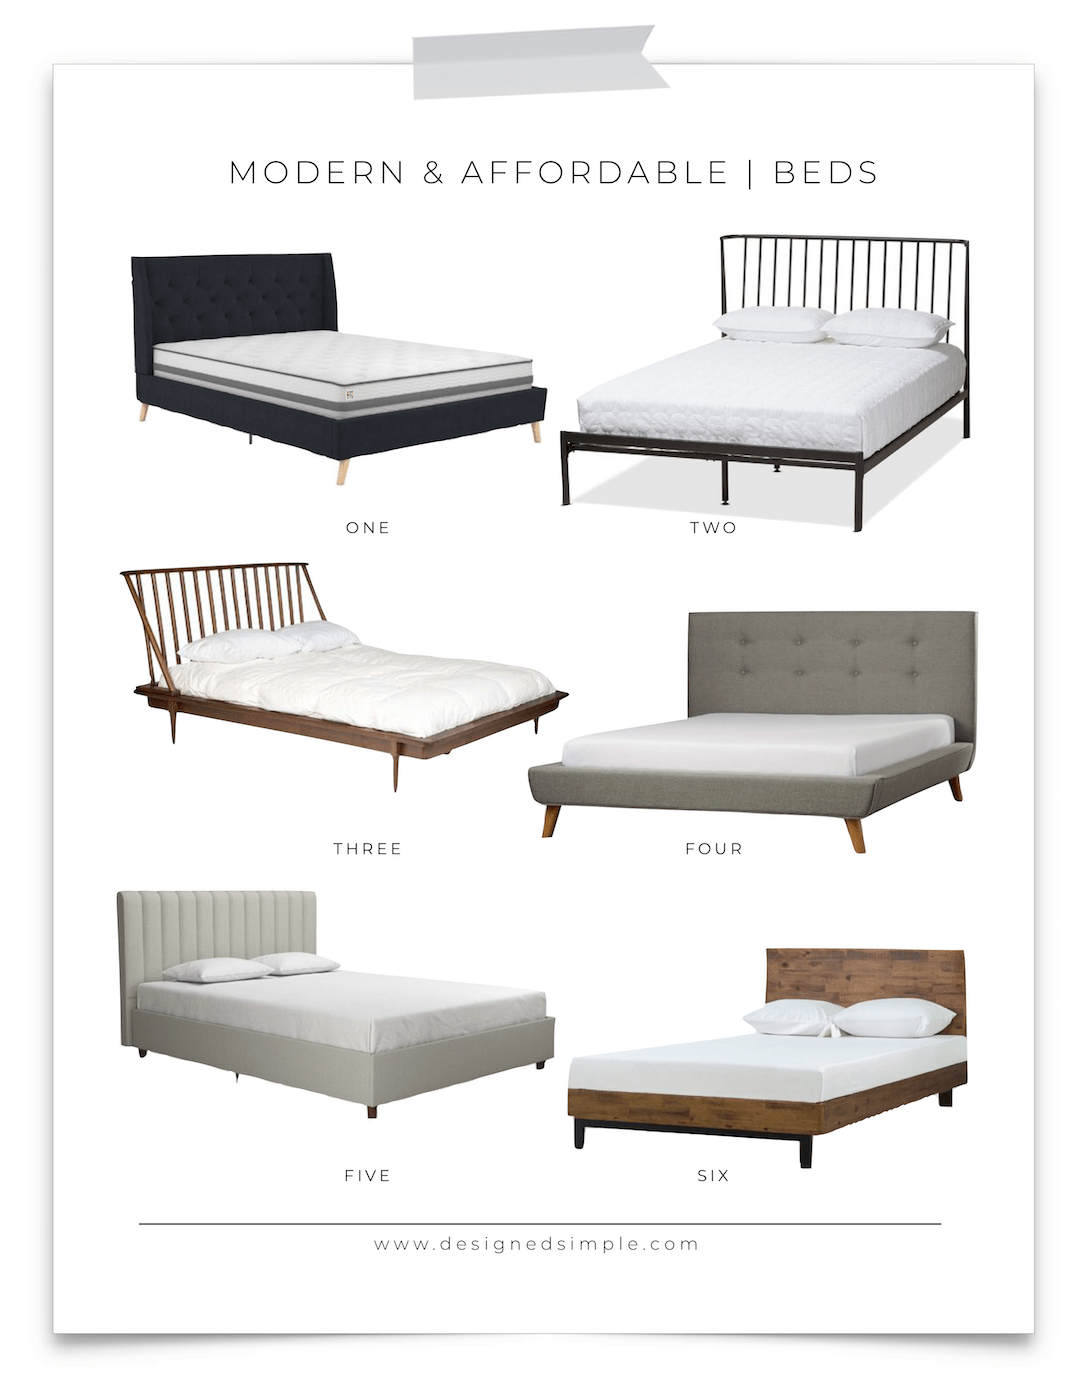 Modern and Affordable Beds | Platform Beds | Designed Simple | designedsimple.com